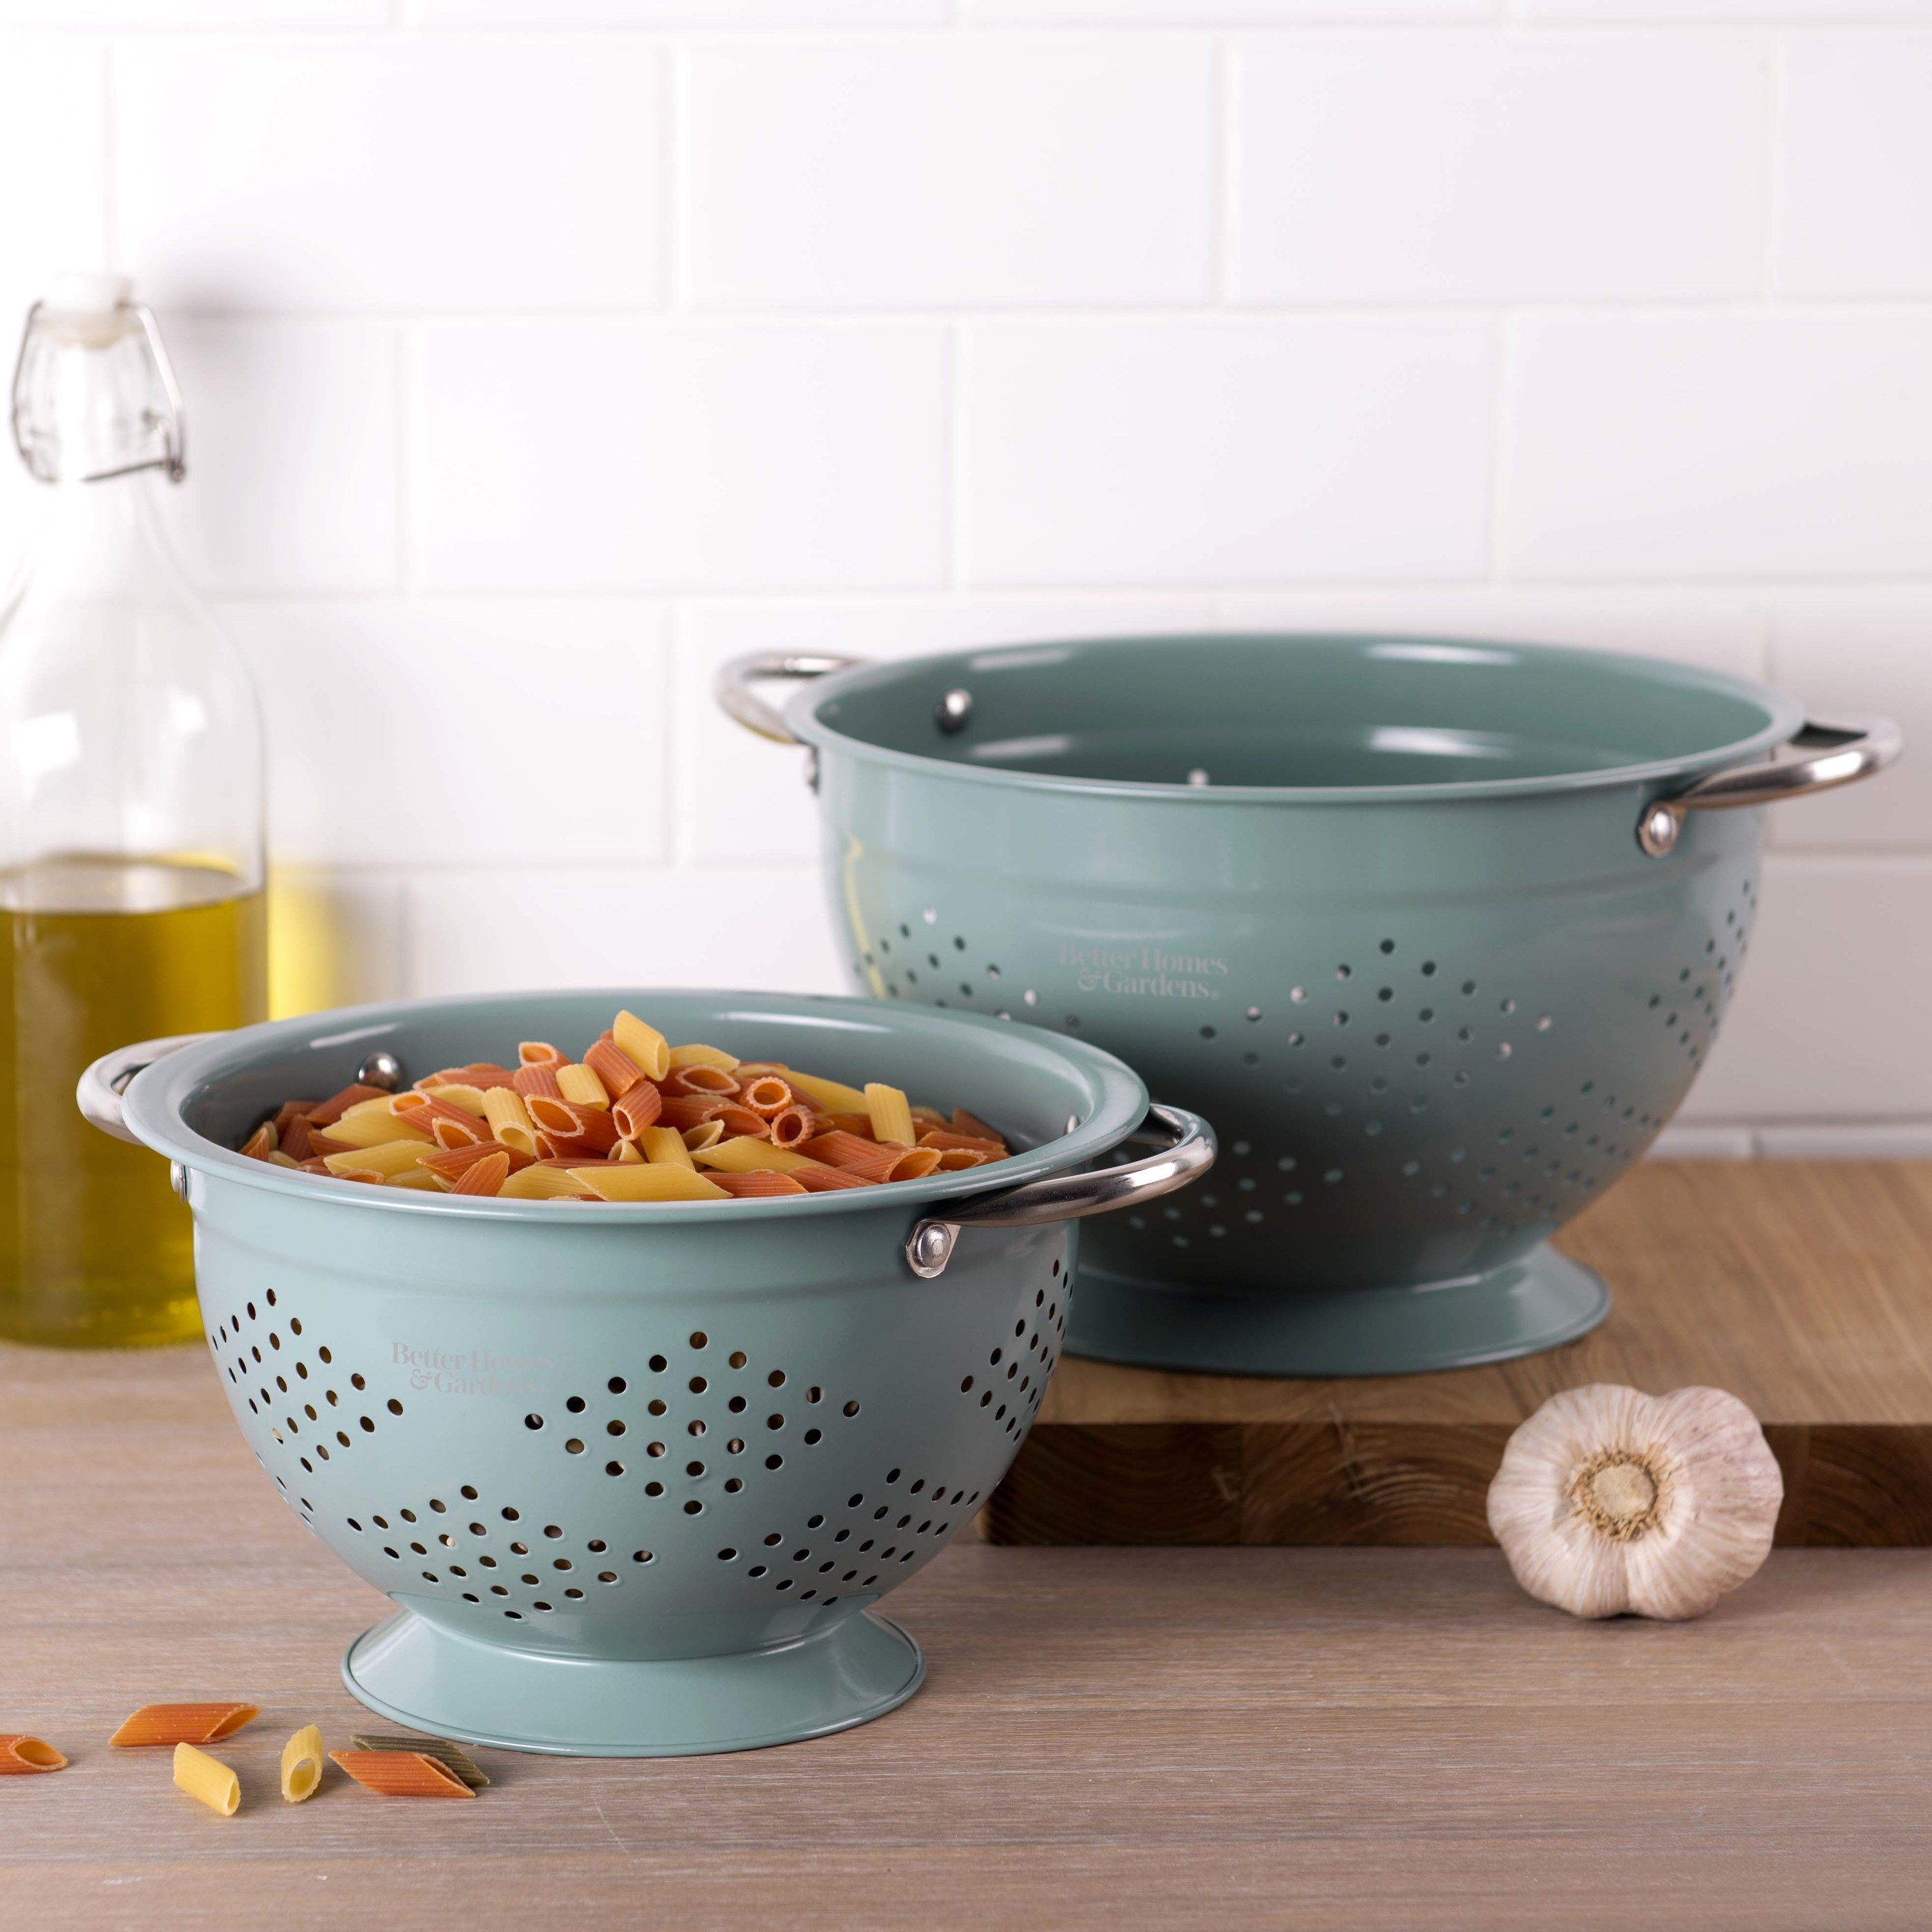 two aqua colored colanders on a counter, one with pasta inside